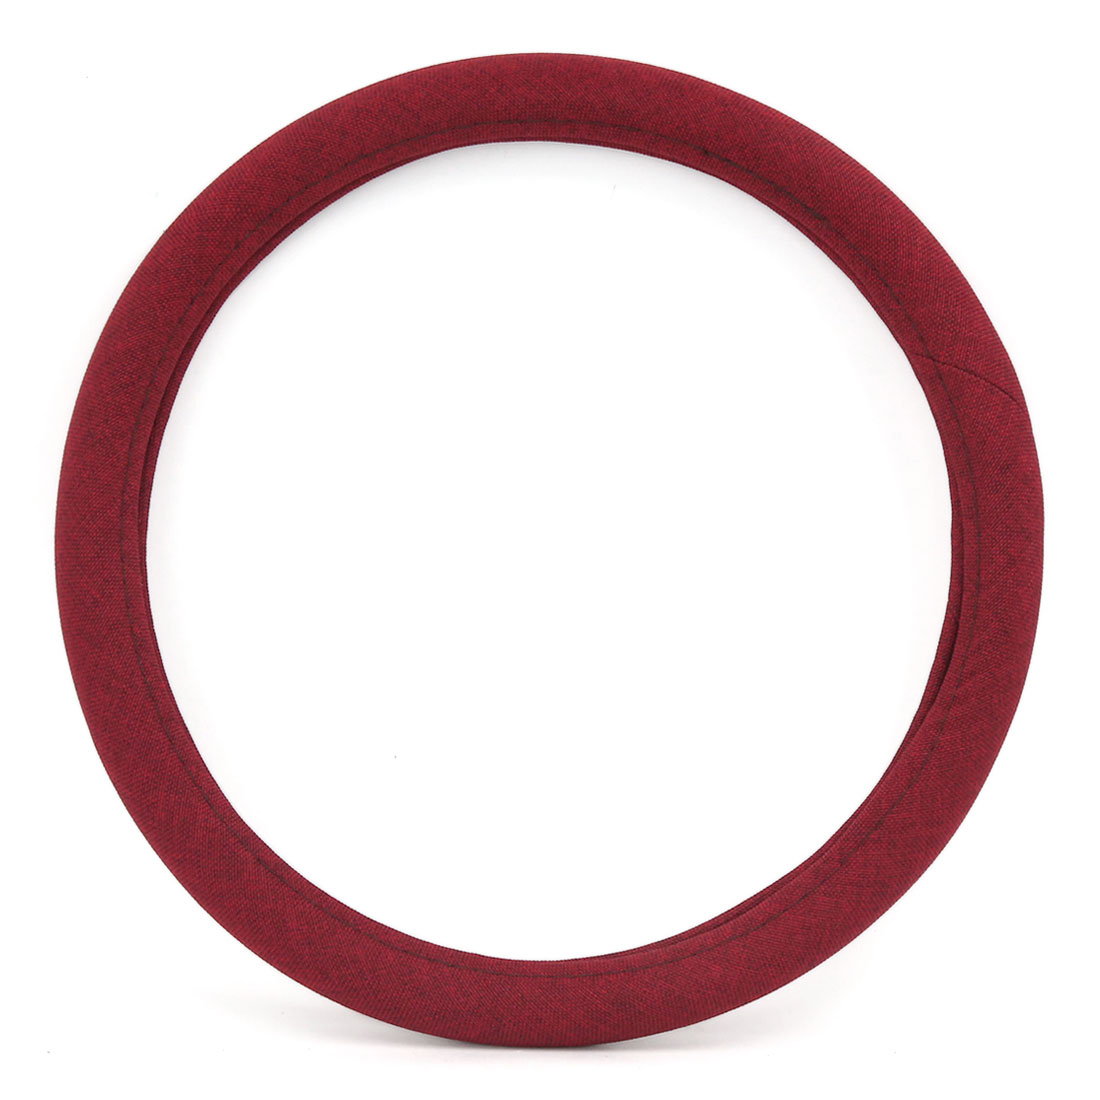 Burgundy Linen Breathable Skidproof Cover Protector Fits 15 Inch Dia Car Steering Wheel